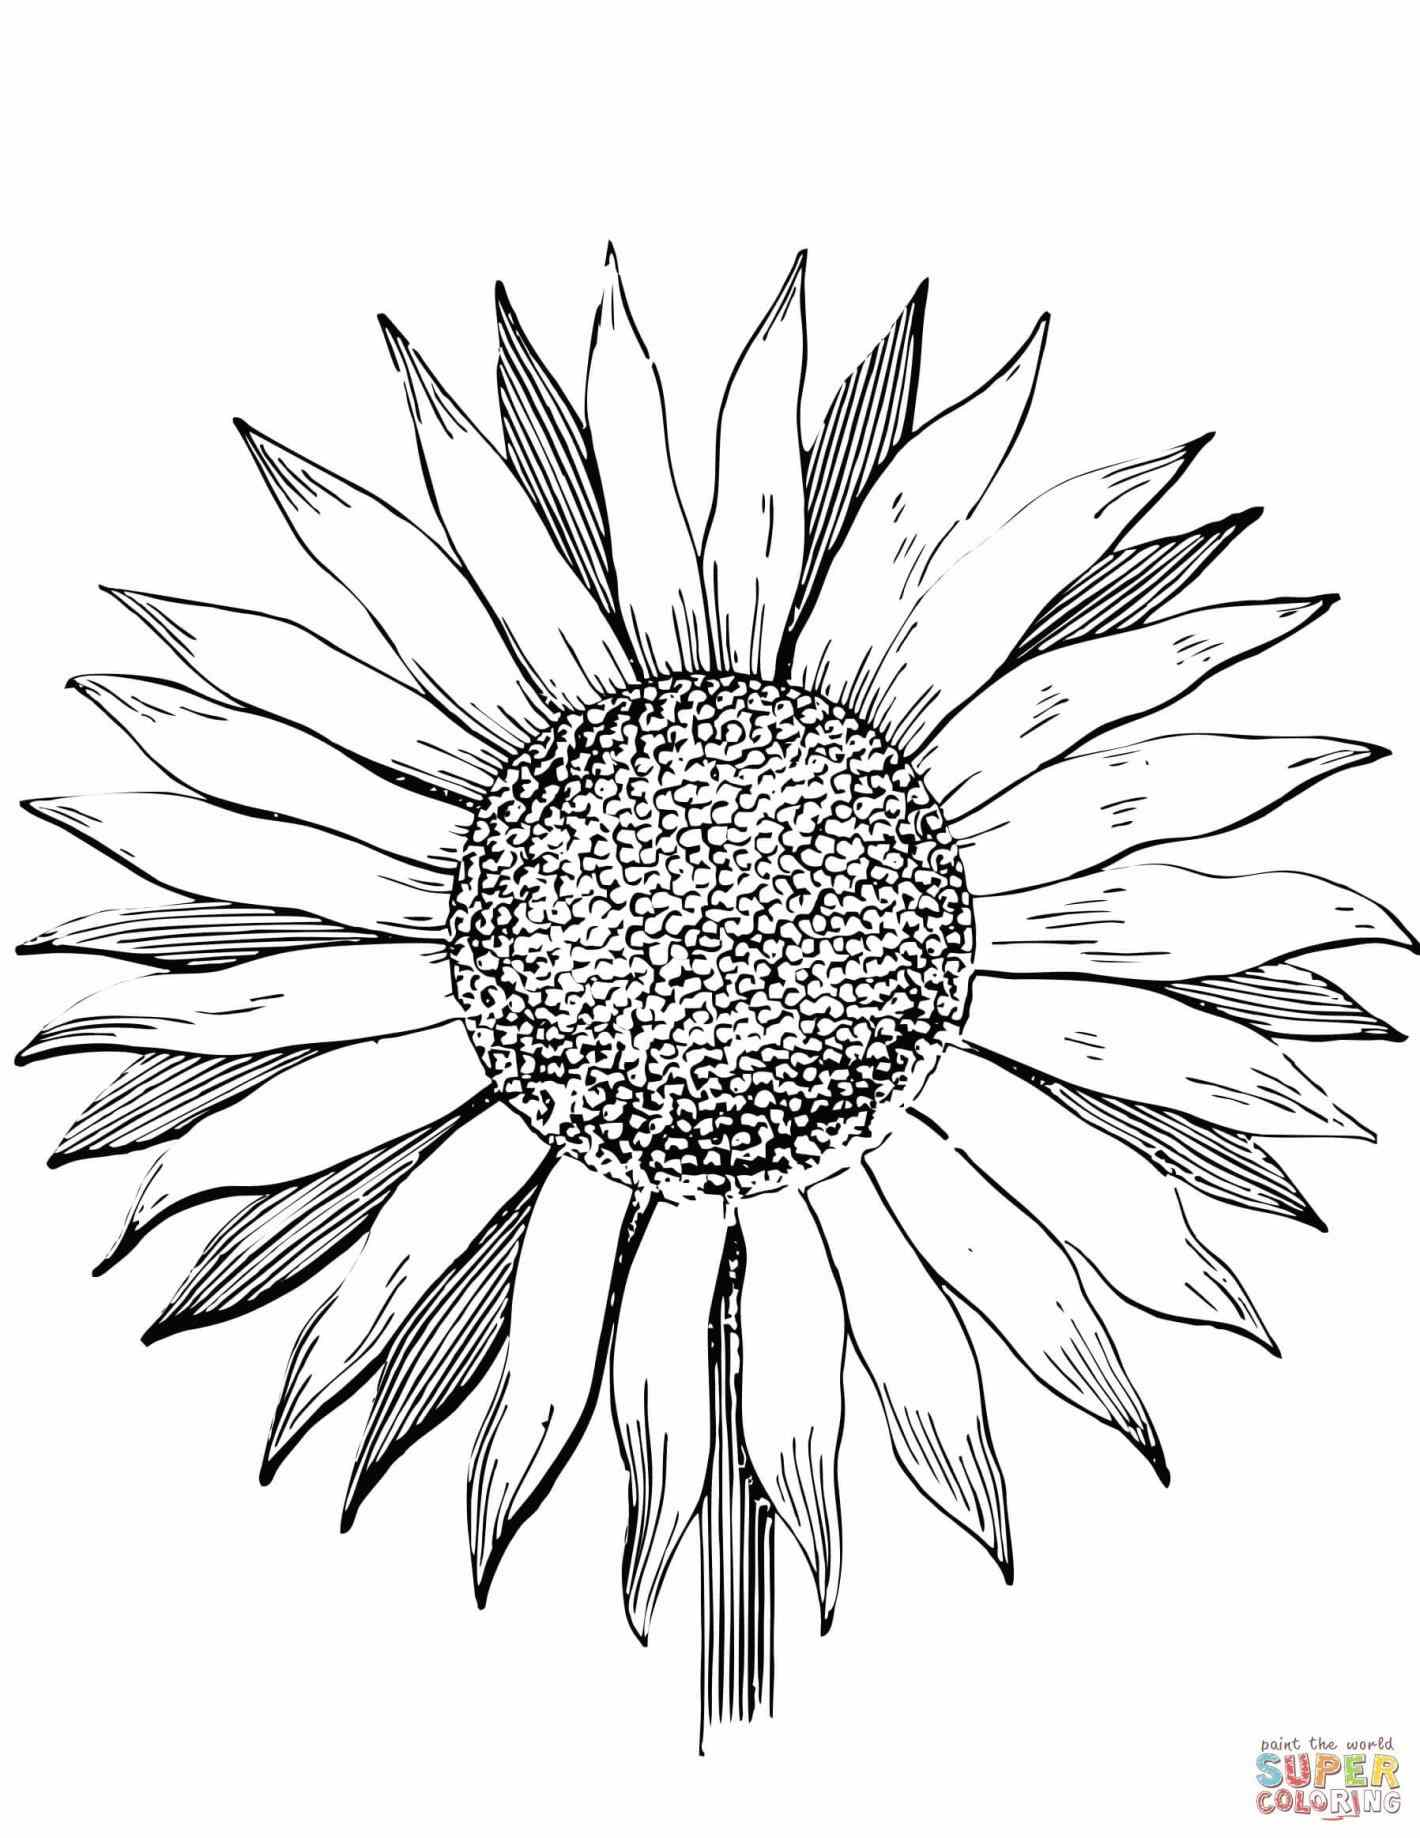 drawings of sunflowers sunflower drawing by sara matthews of sunflowers drawings